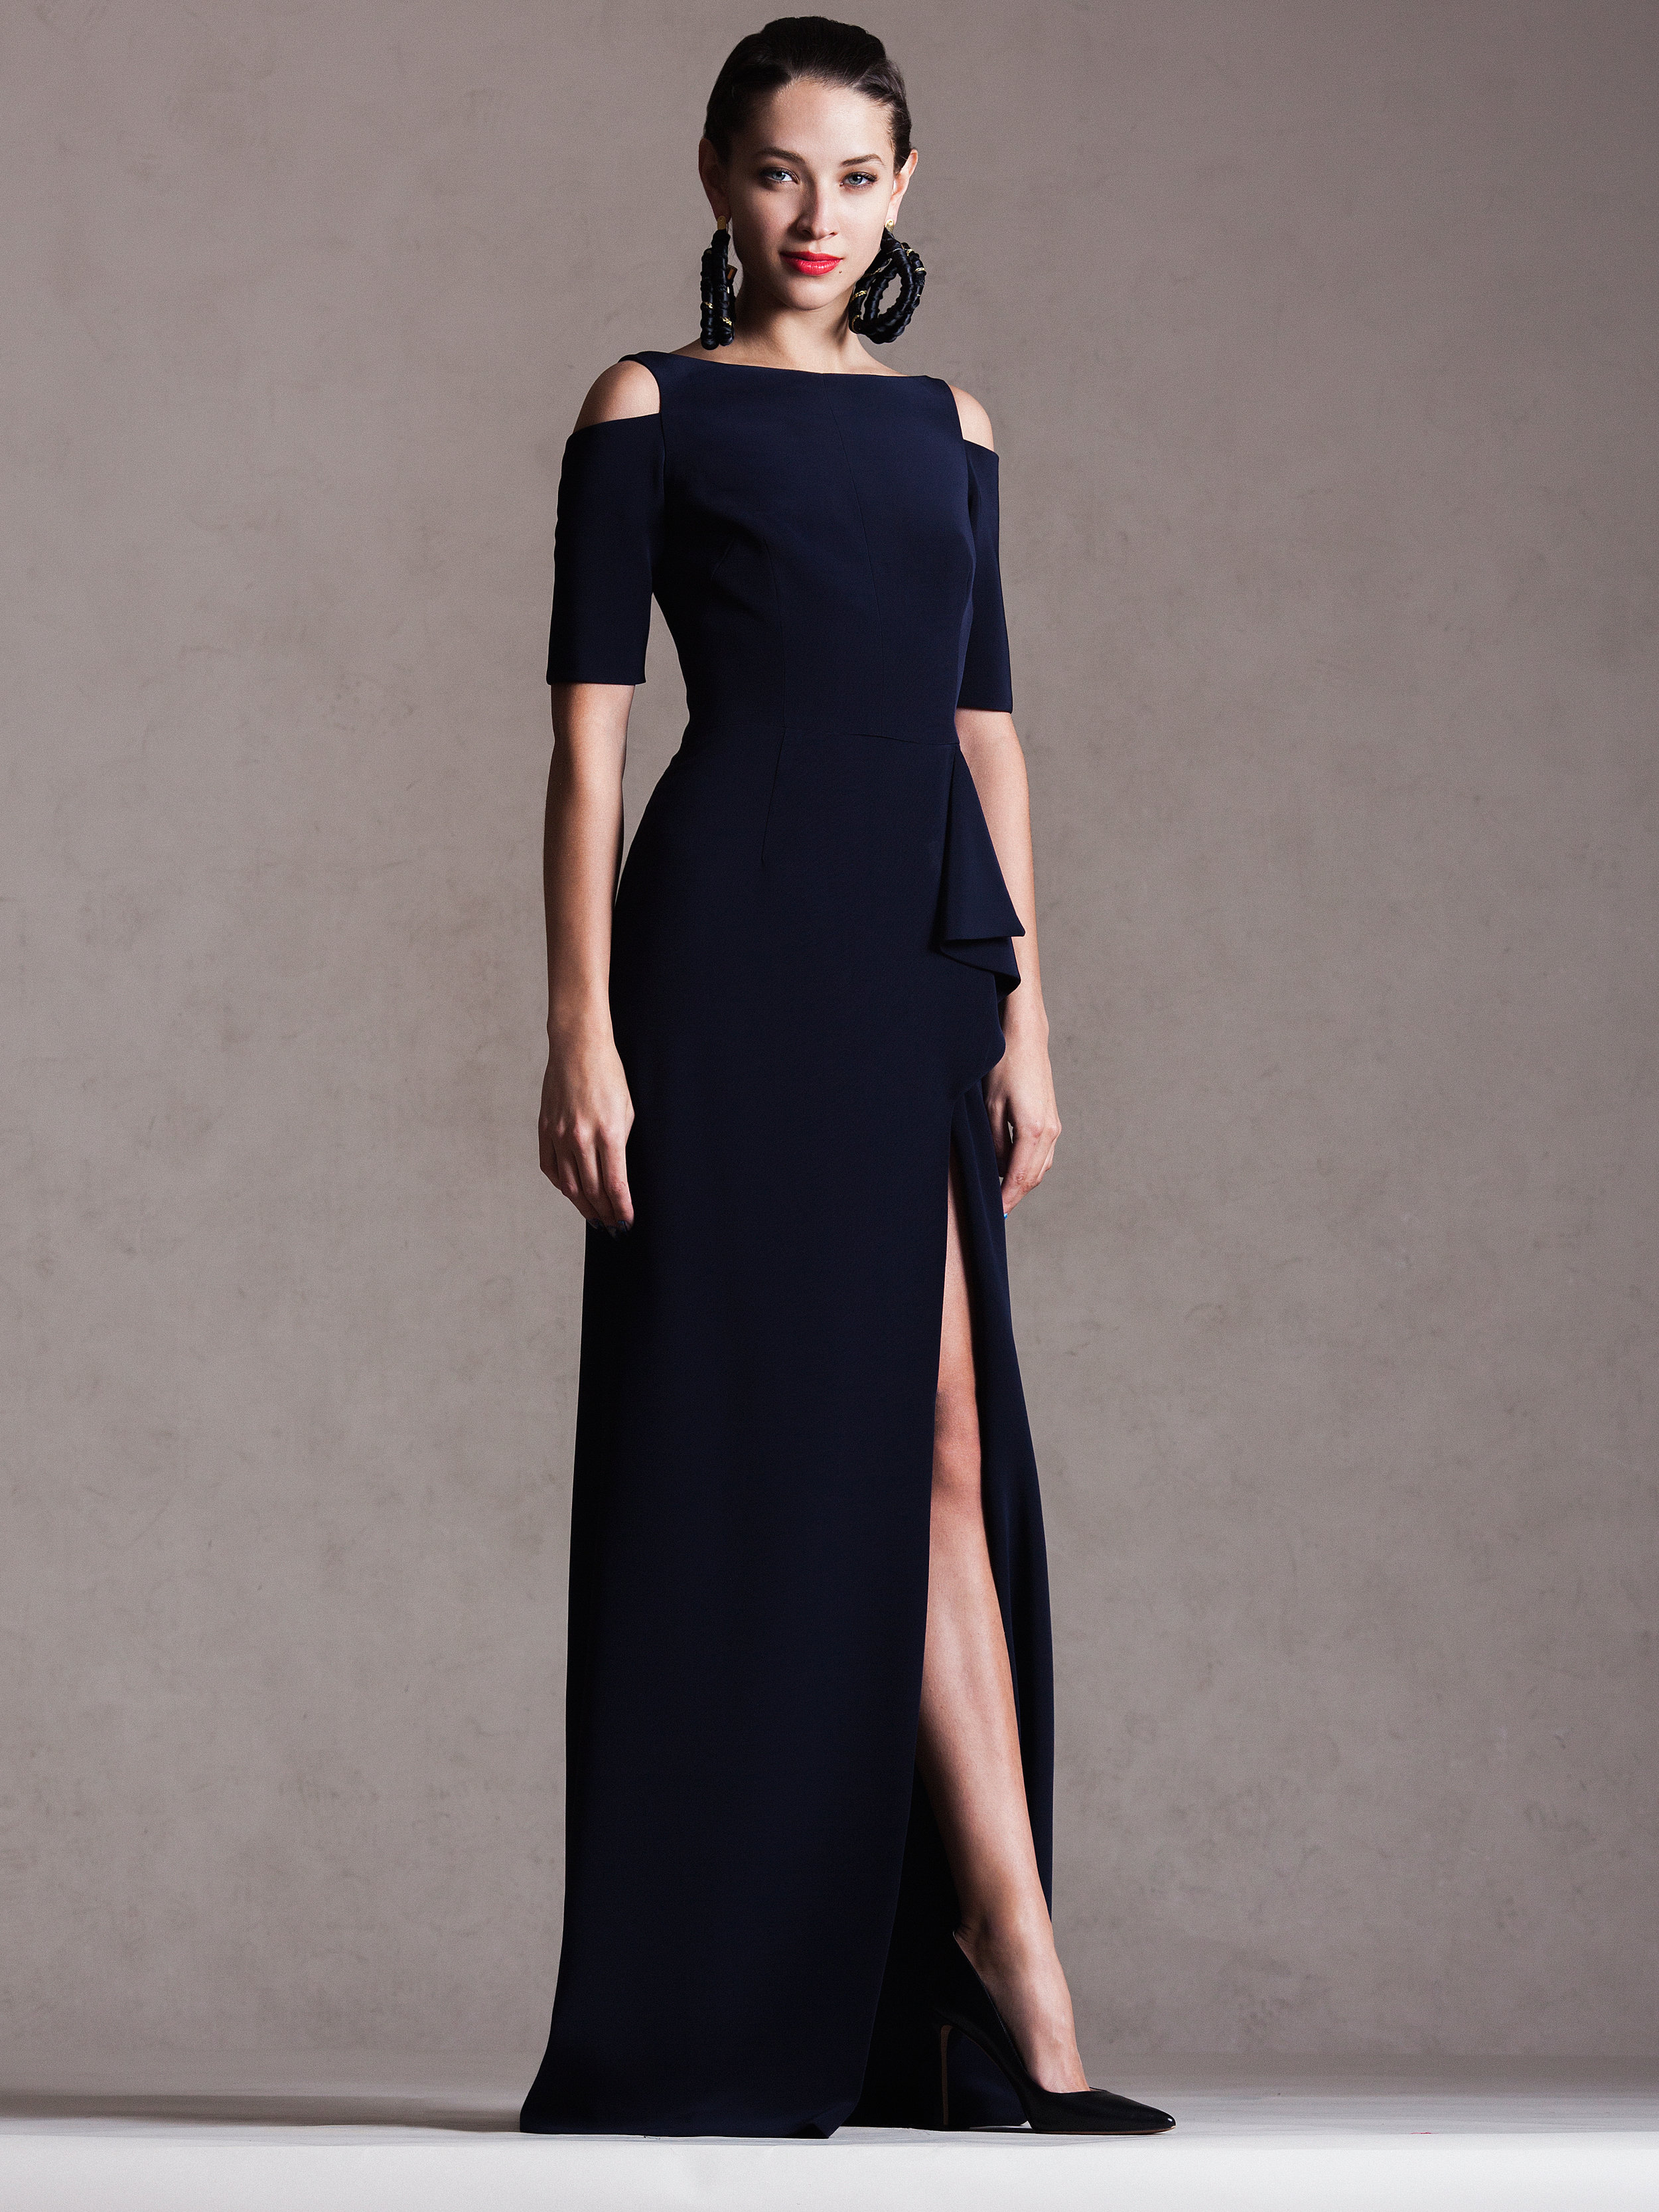 Lucian-Matis-Lookbook-20150204-009c.jpg